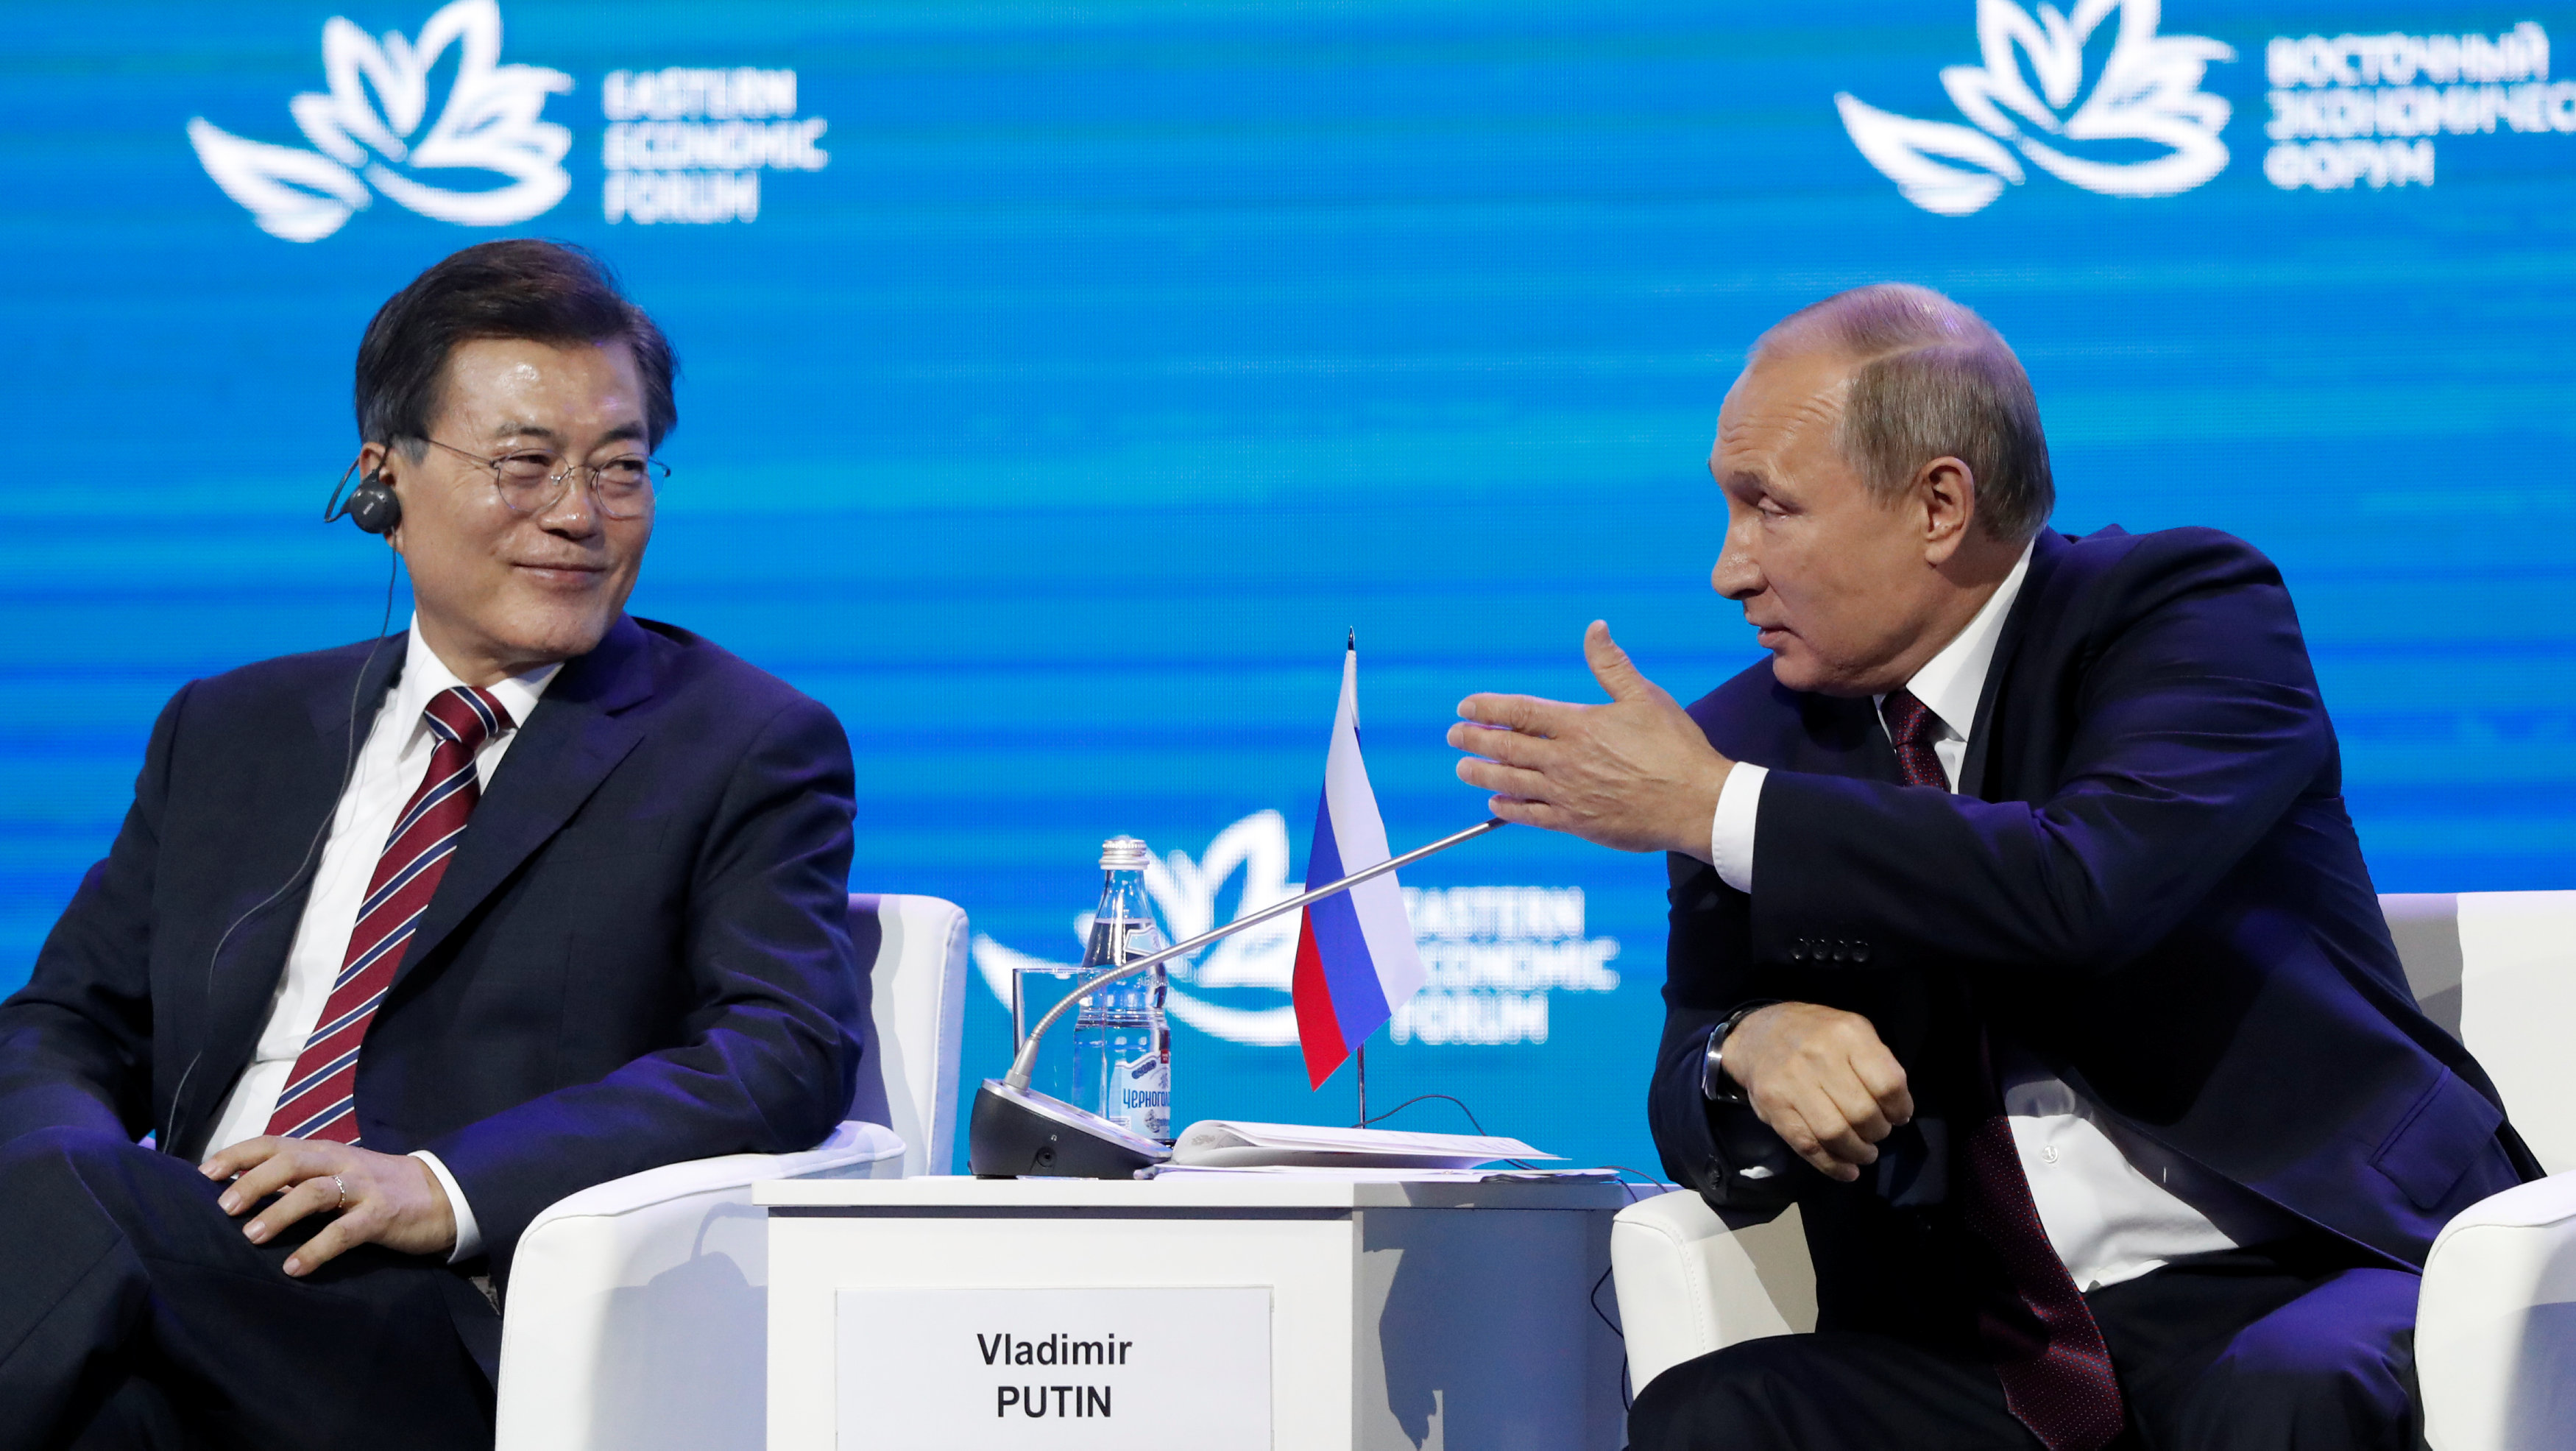 Russian President Vladimir Putin and his South Korean counterpart Moon Jae-in attend a session of the Eastern Economic Forum in Vladivostok, Russia on Sept. 7, 2017. (REUTERS/Sergei Karpukhin)